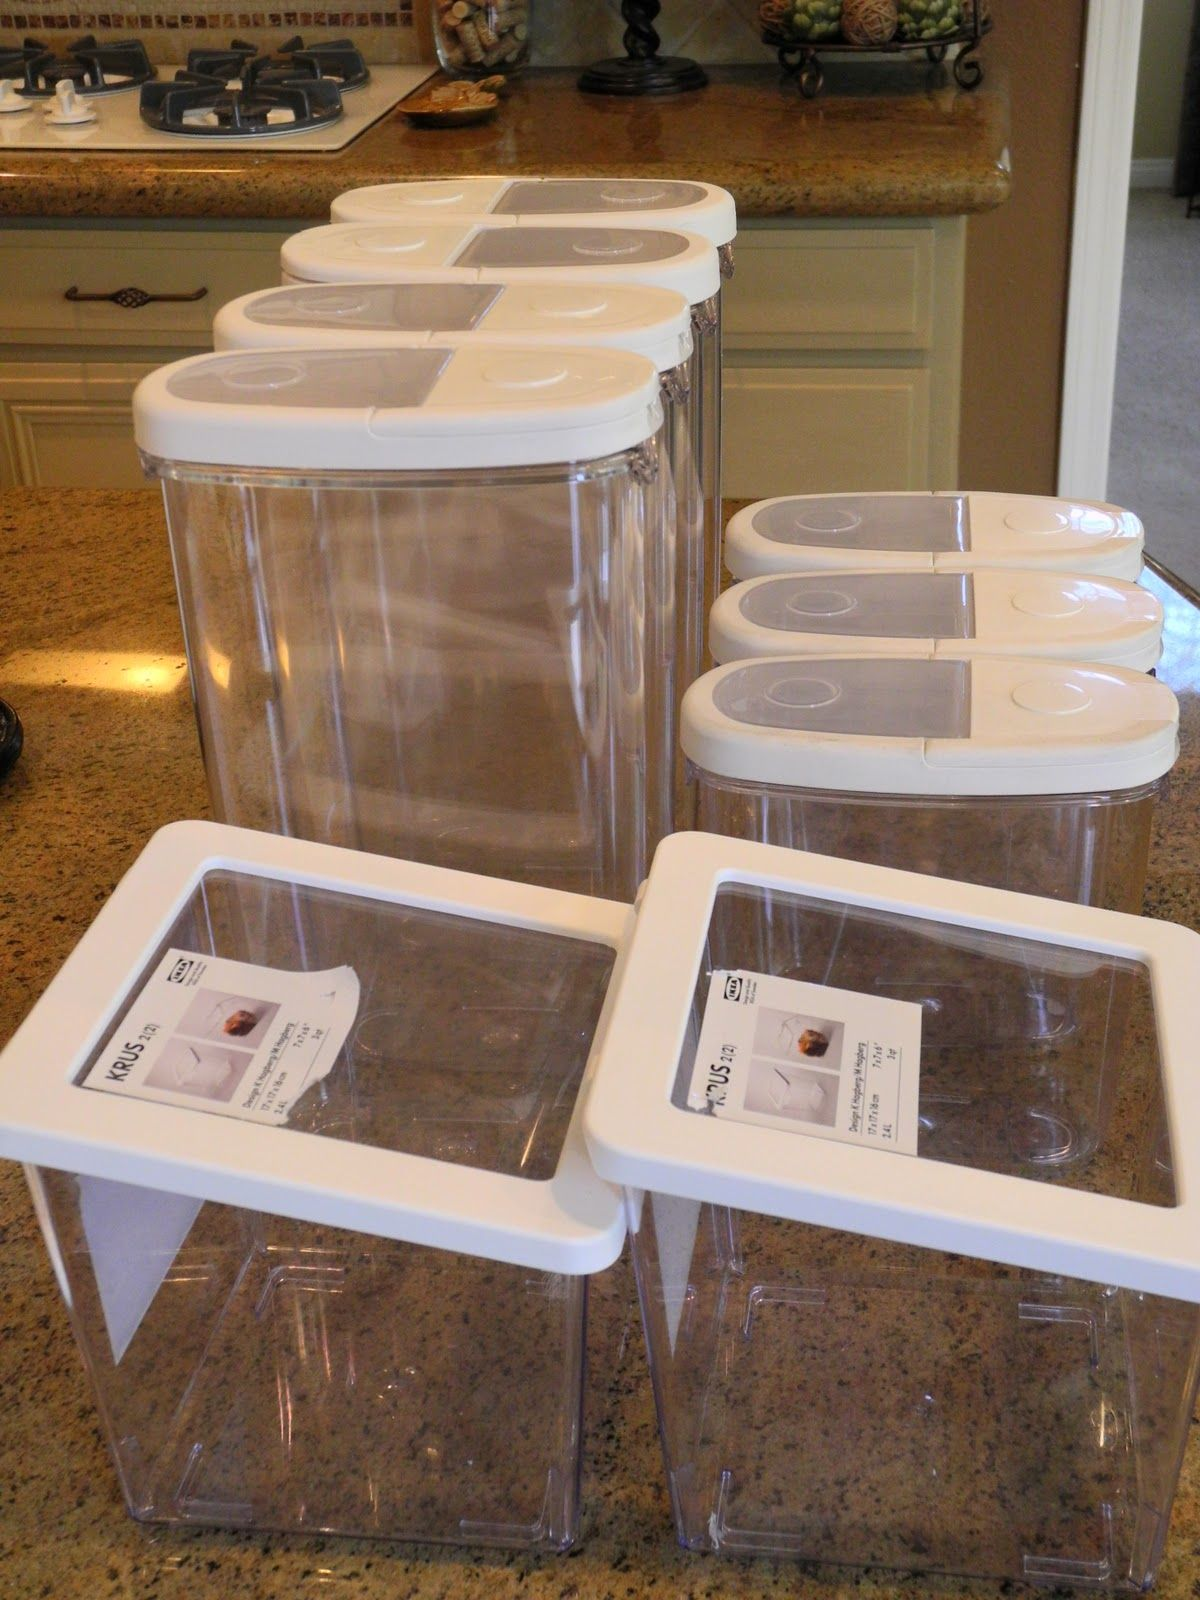 small kitchen solutions ikea cabinets san diego bins for organizing pantry bpa free containers